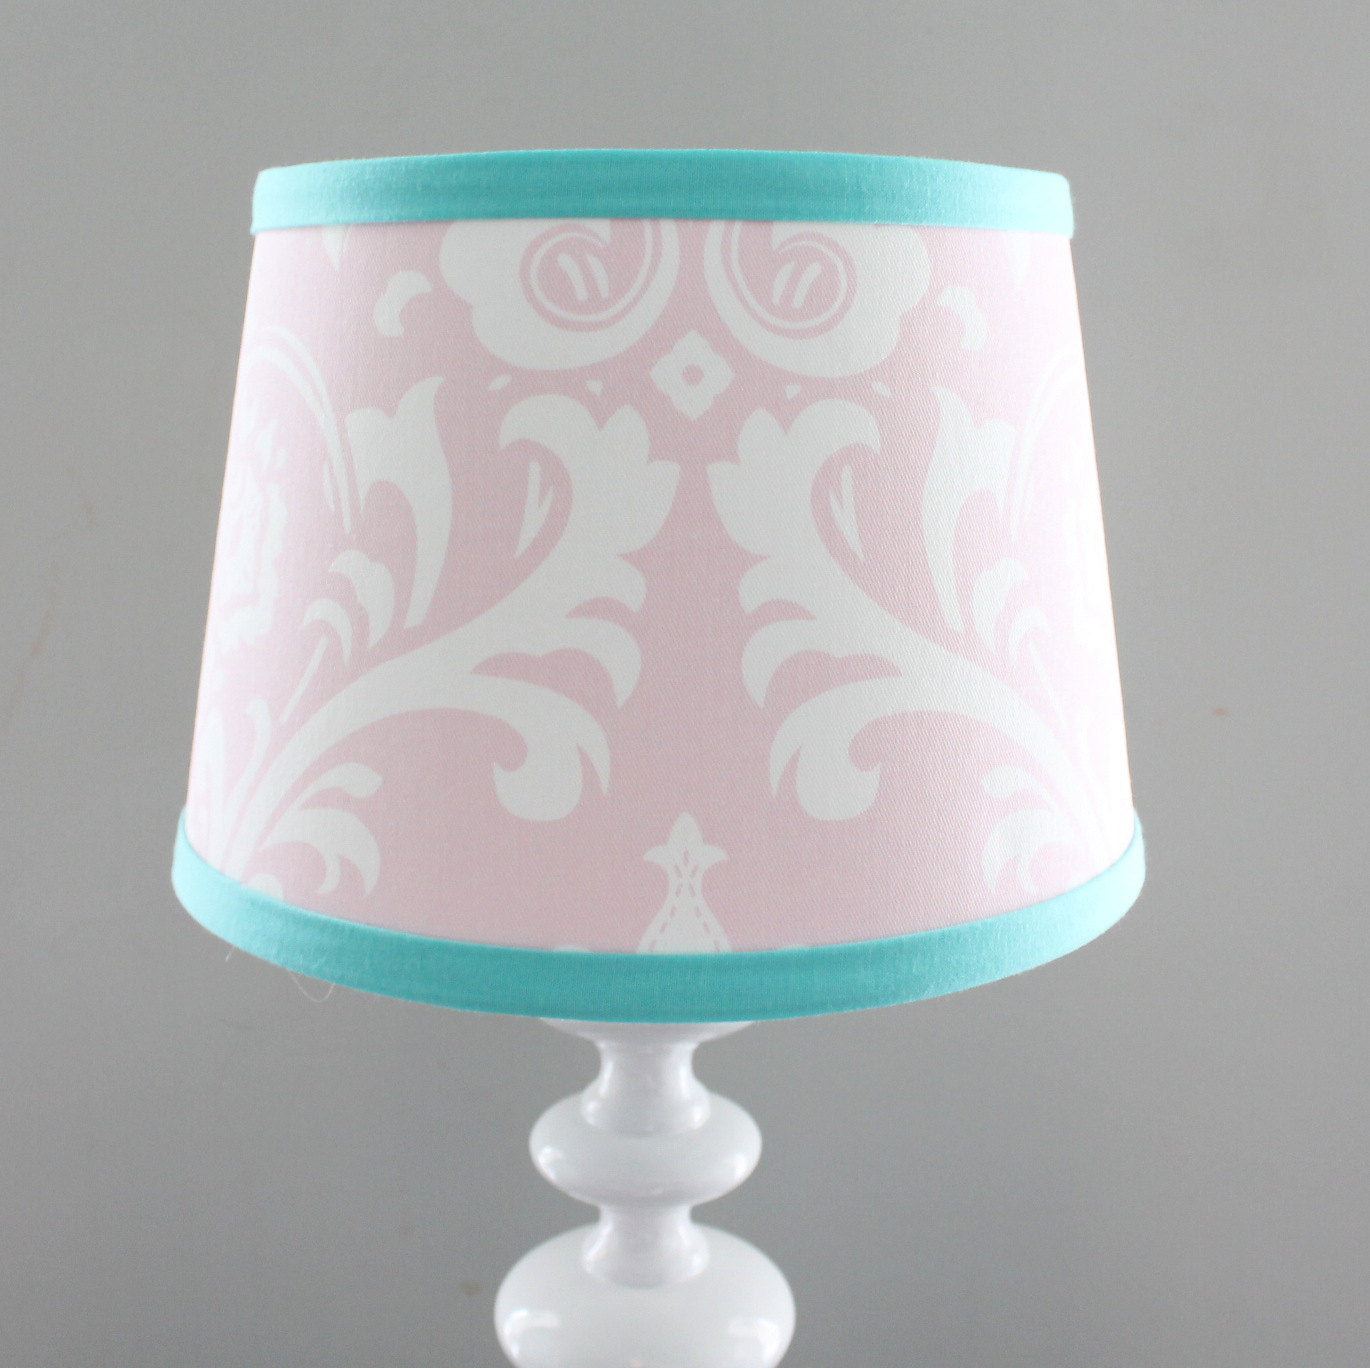 tbl lamp layered scallop shell small aqua